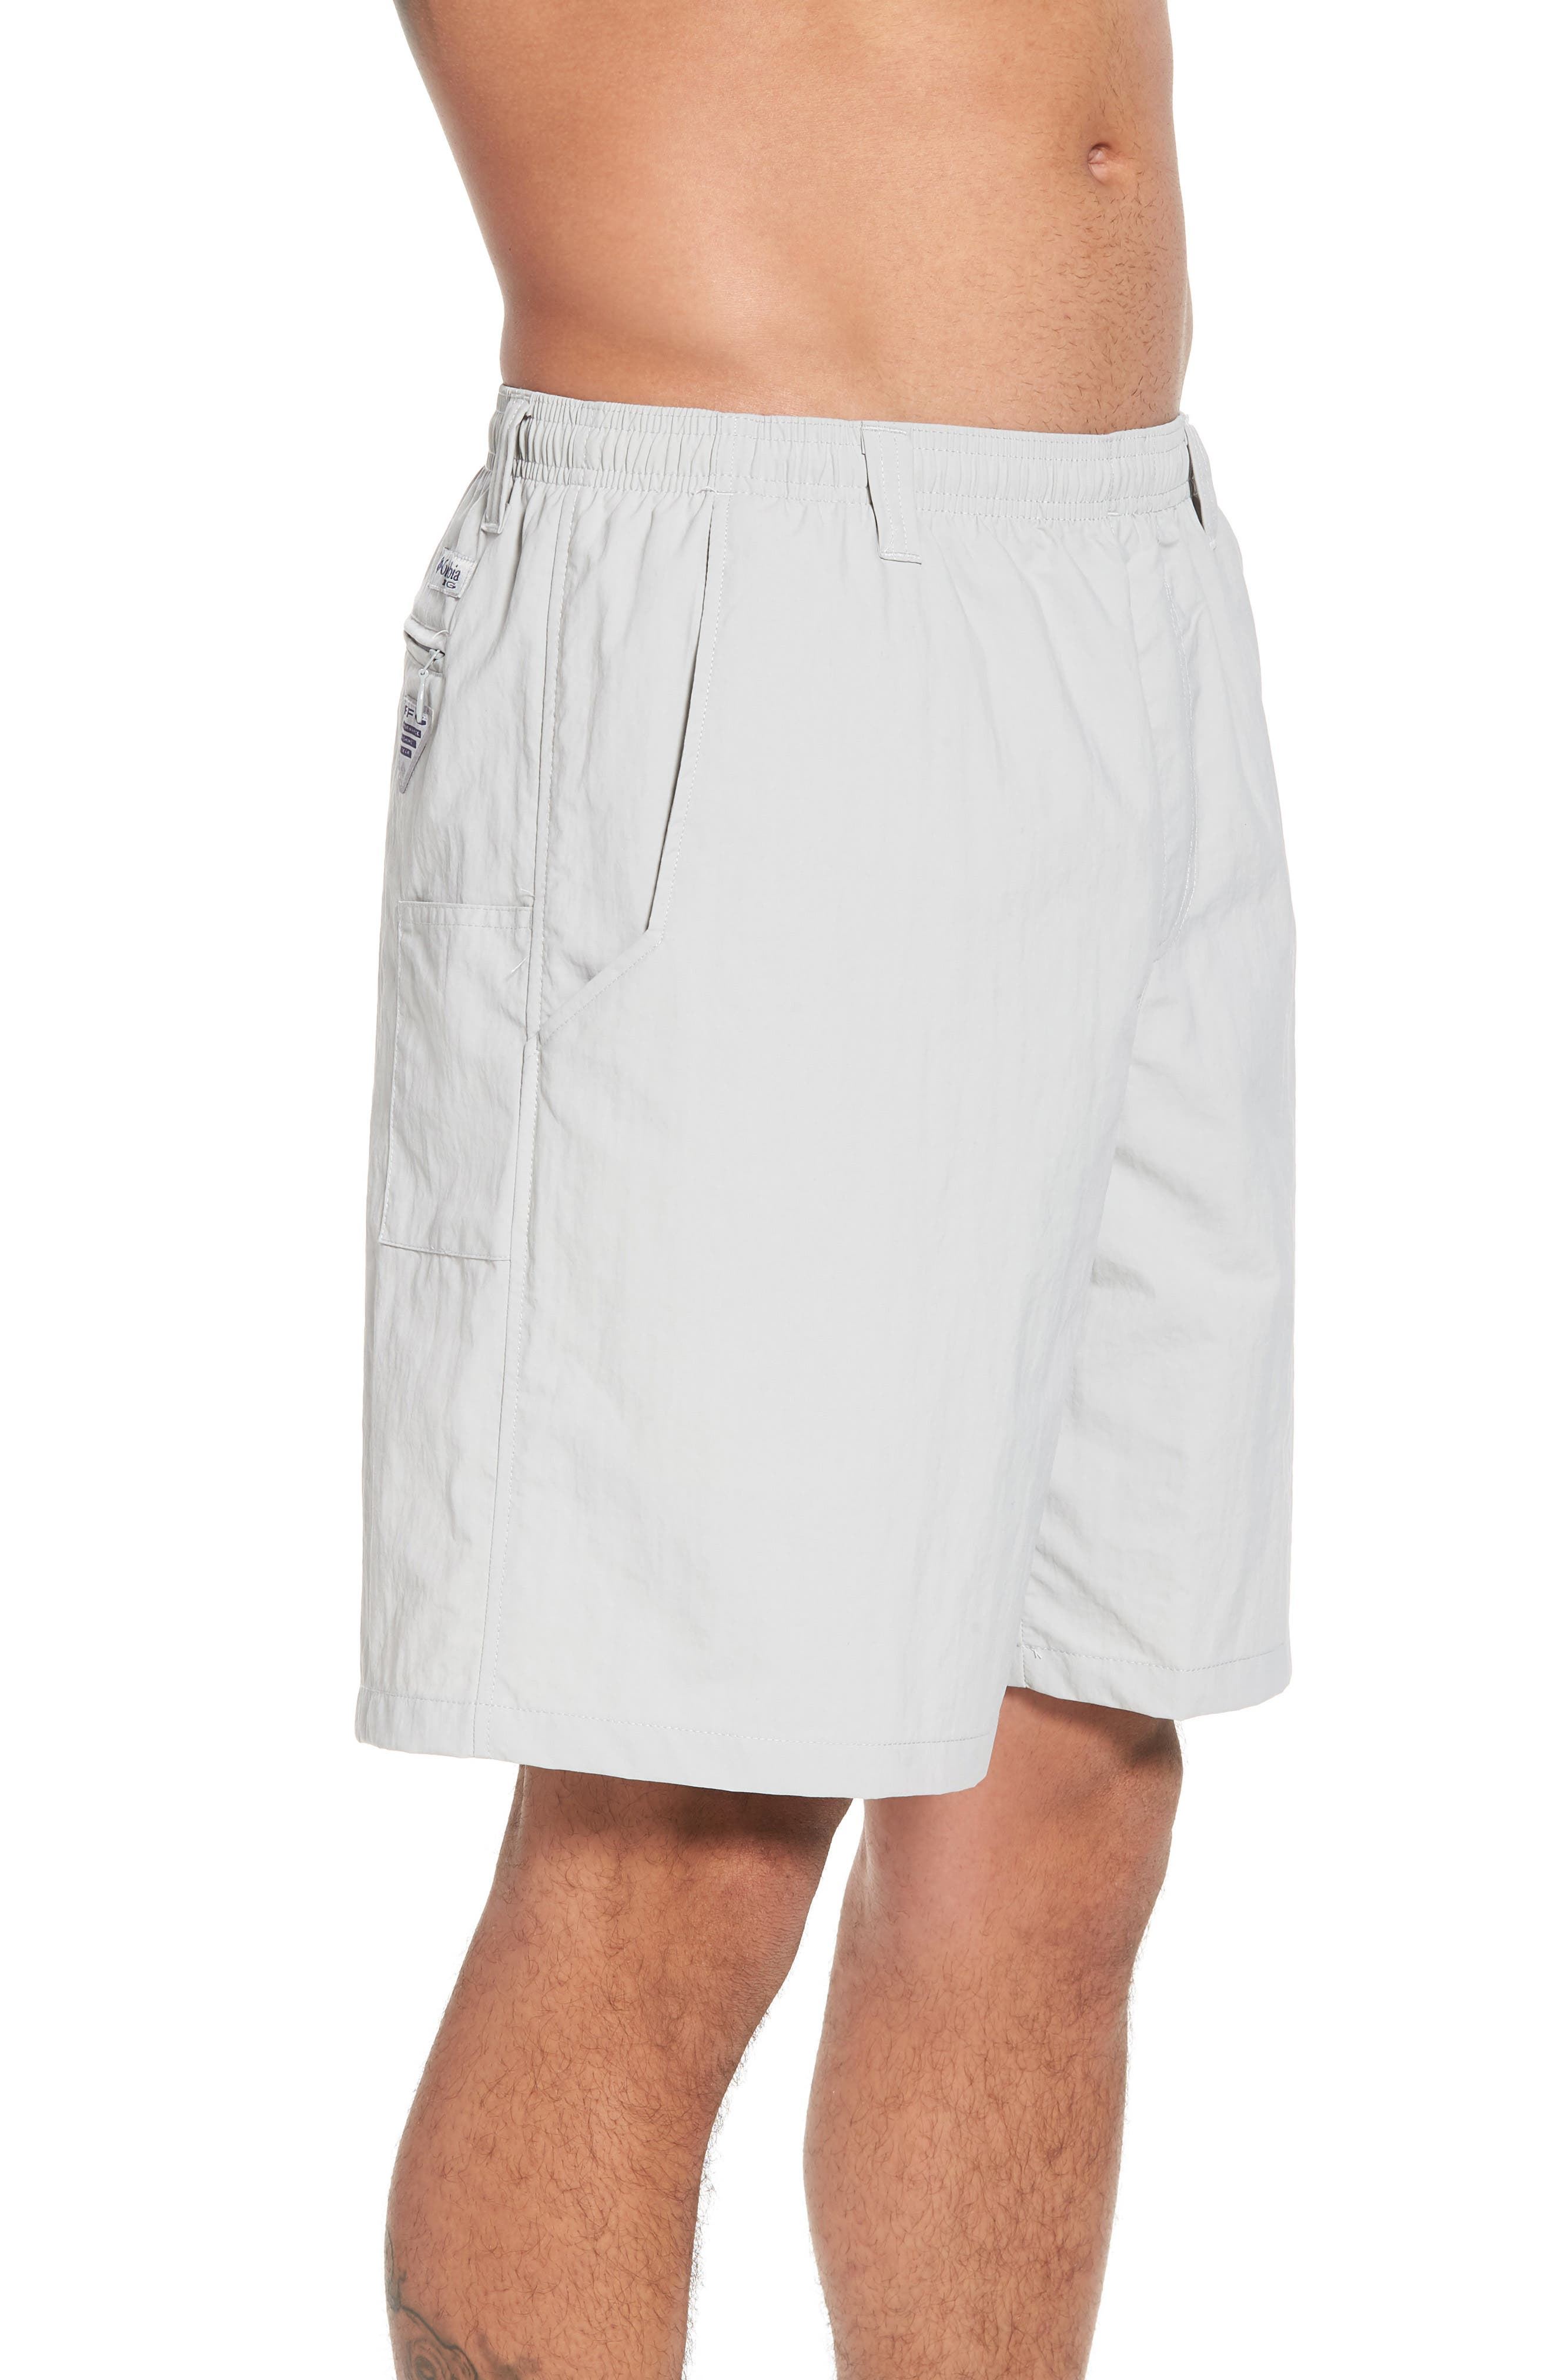 Backcast III Swim Trunks,                             Alternate thumbnail 3, color,                             COOL GREY